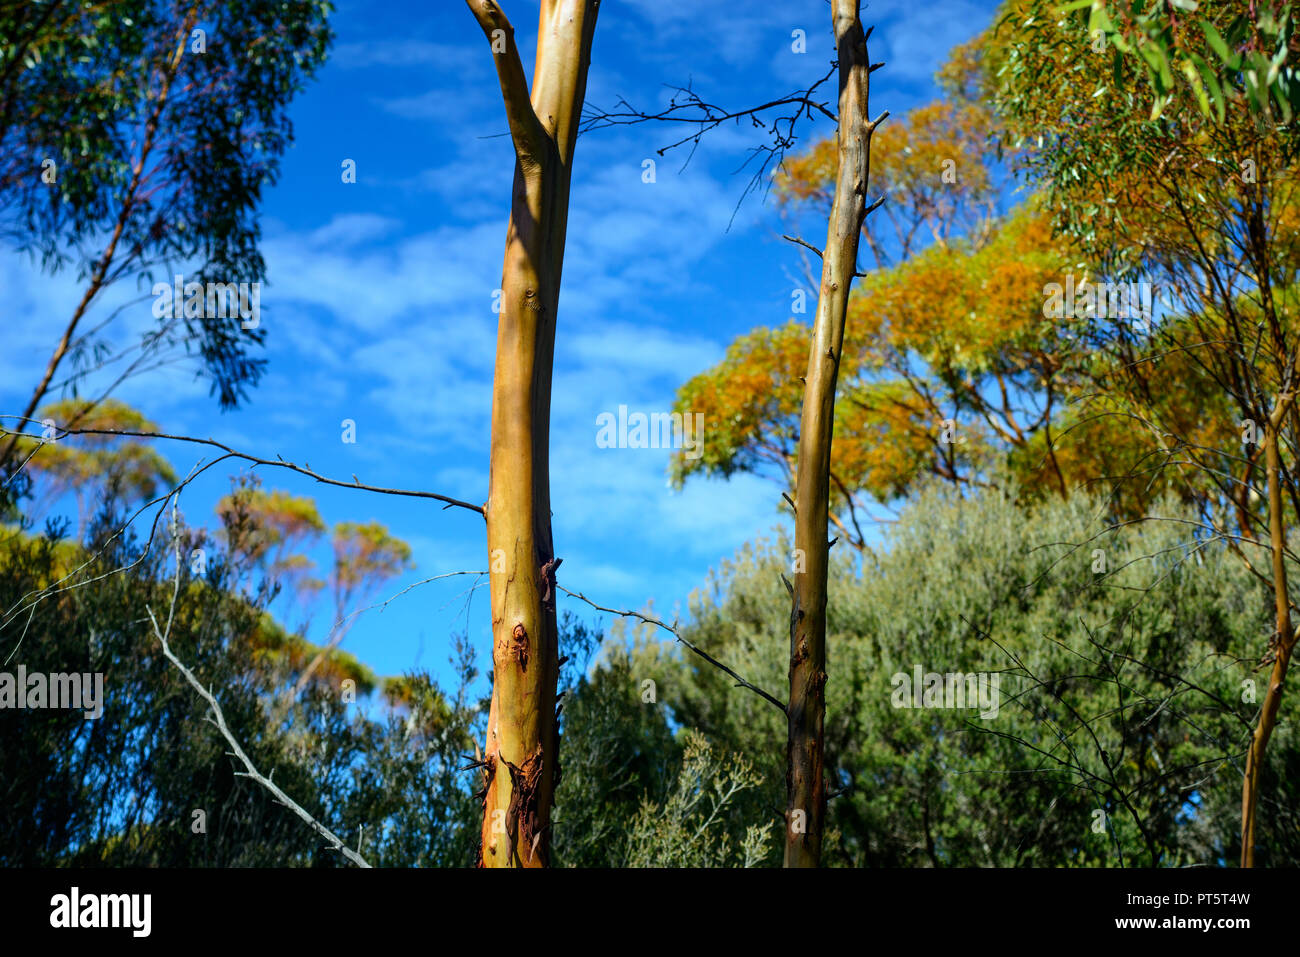 River Red Gum Tree, in a eucalyptus forest, Western Australia - Stock Image